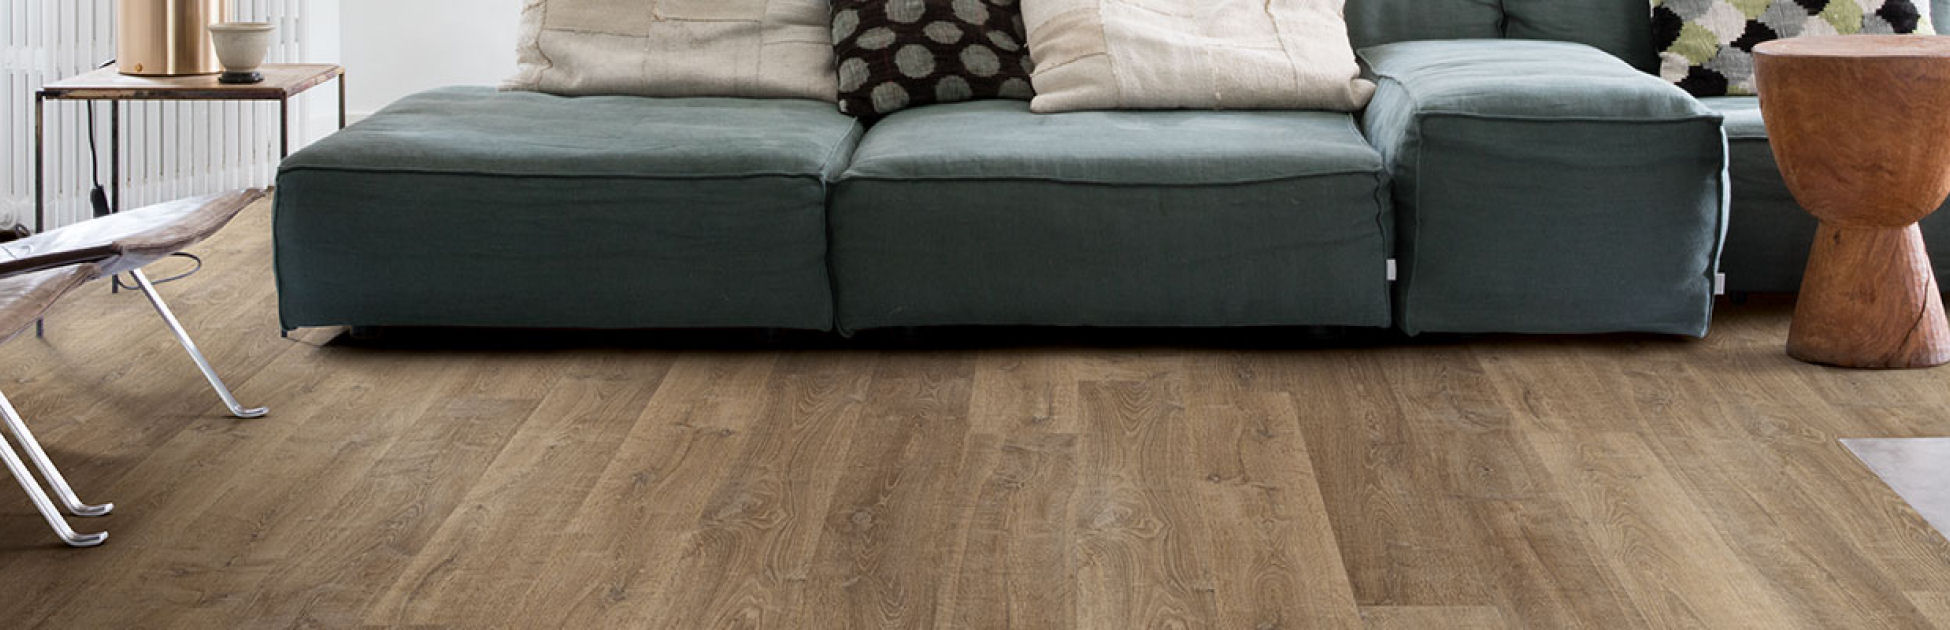 carpet-co laminate flooring